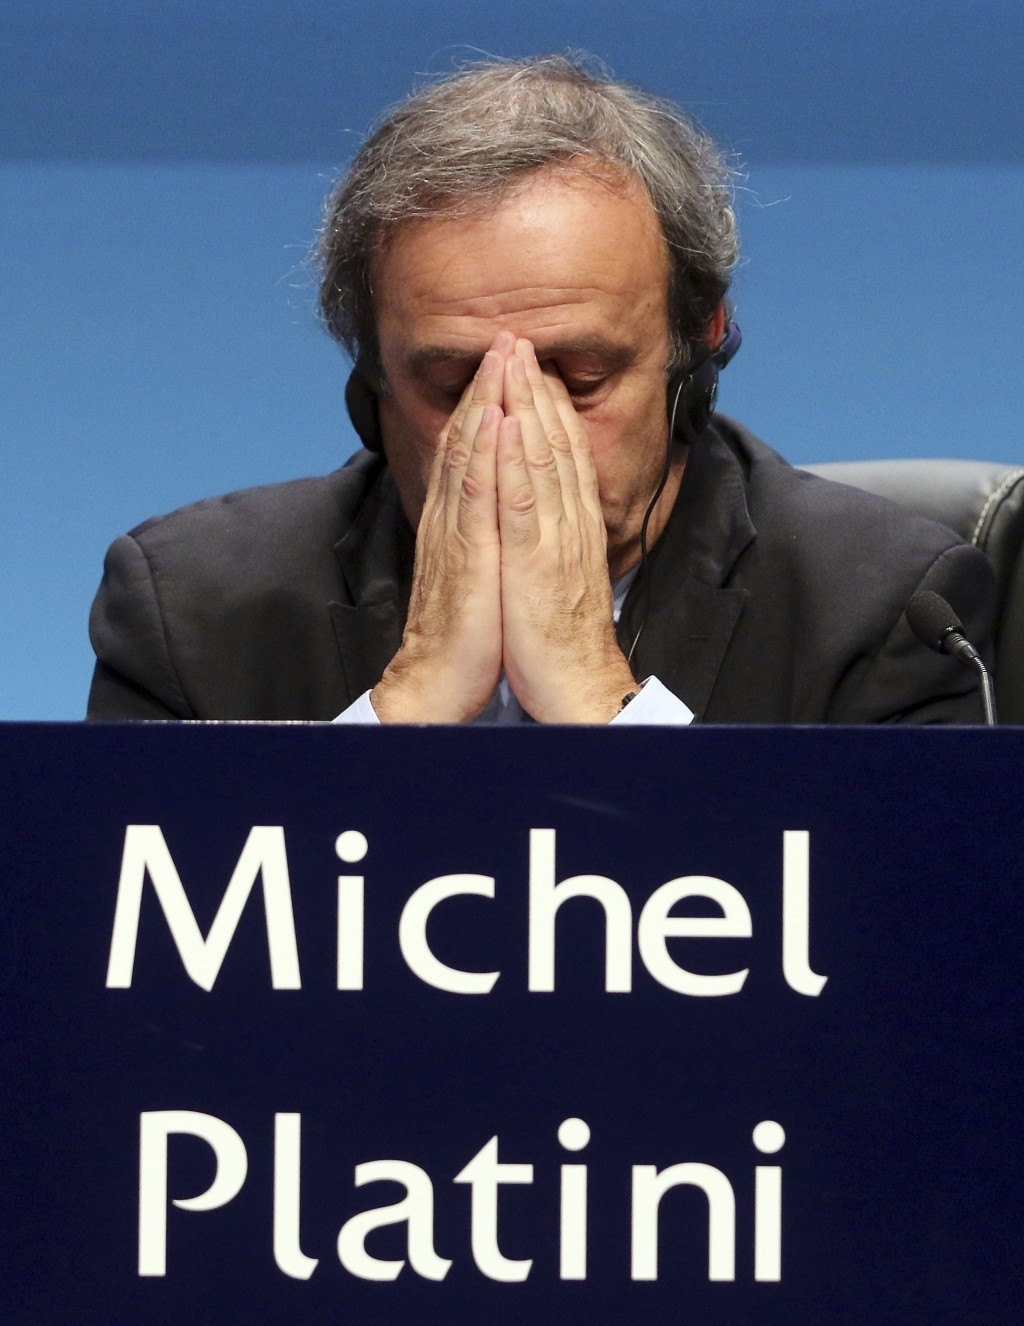 FILE - In this Tuesday, March 24, 2015 file photo UEFA President Michel Platini covers his face during a news conference at the end of the 39th Ordina...